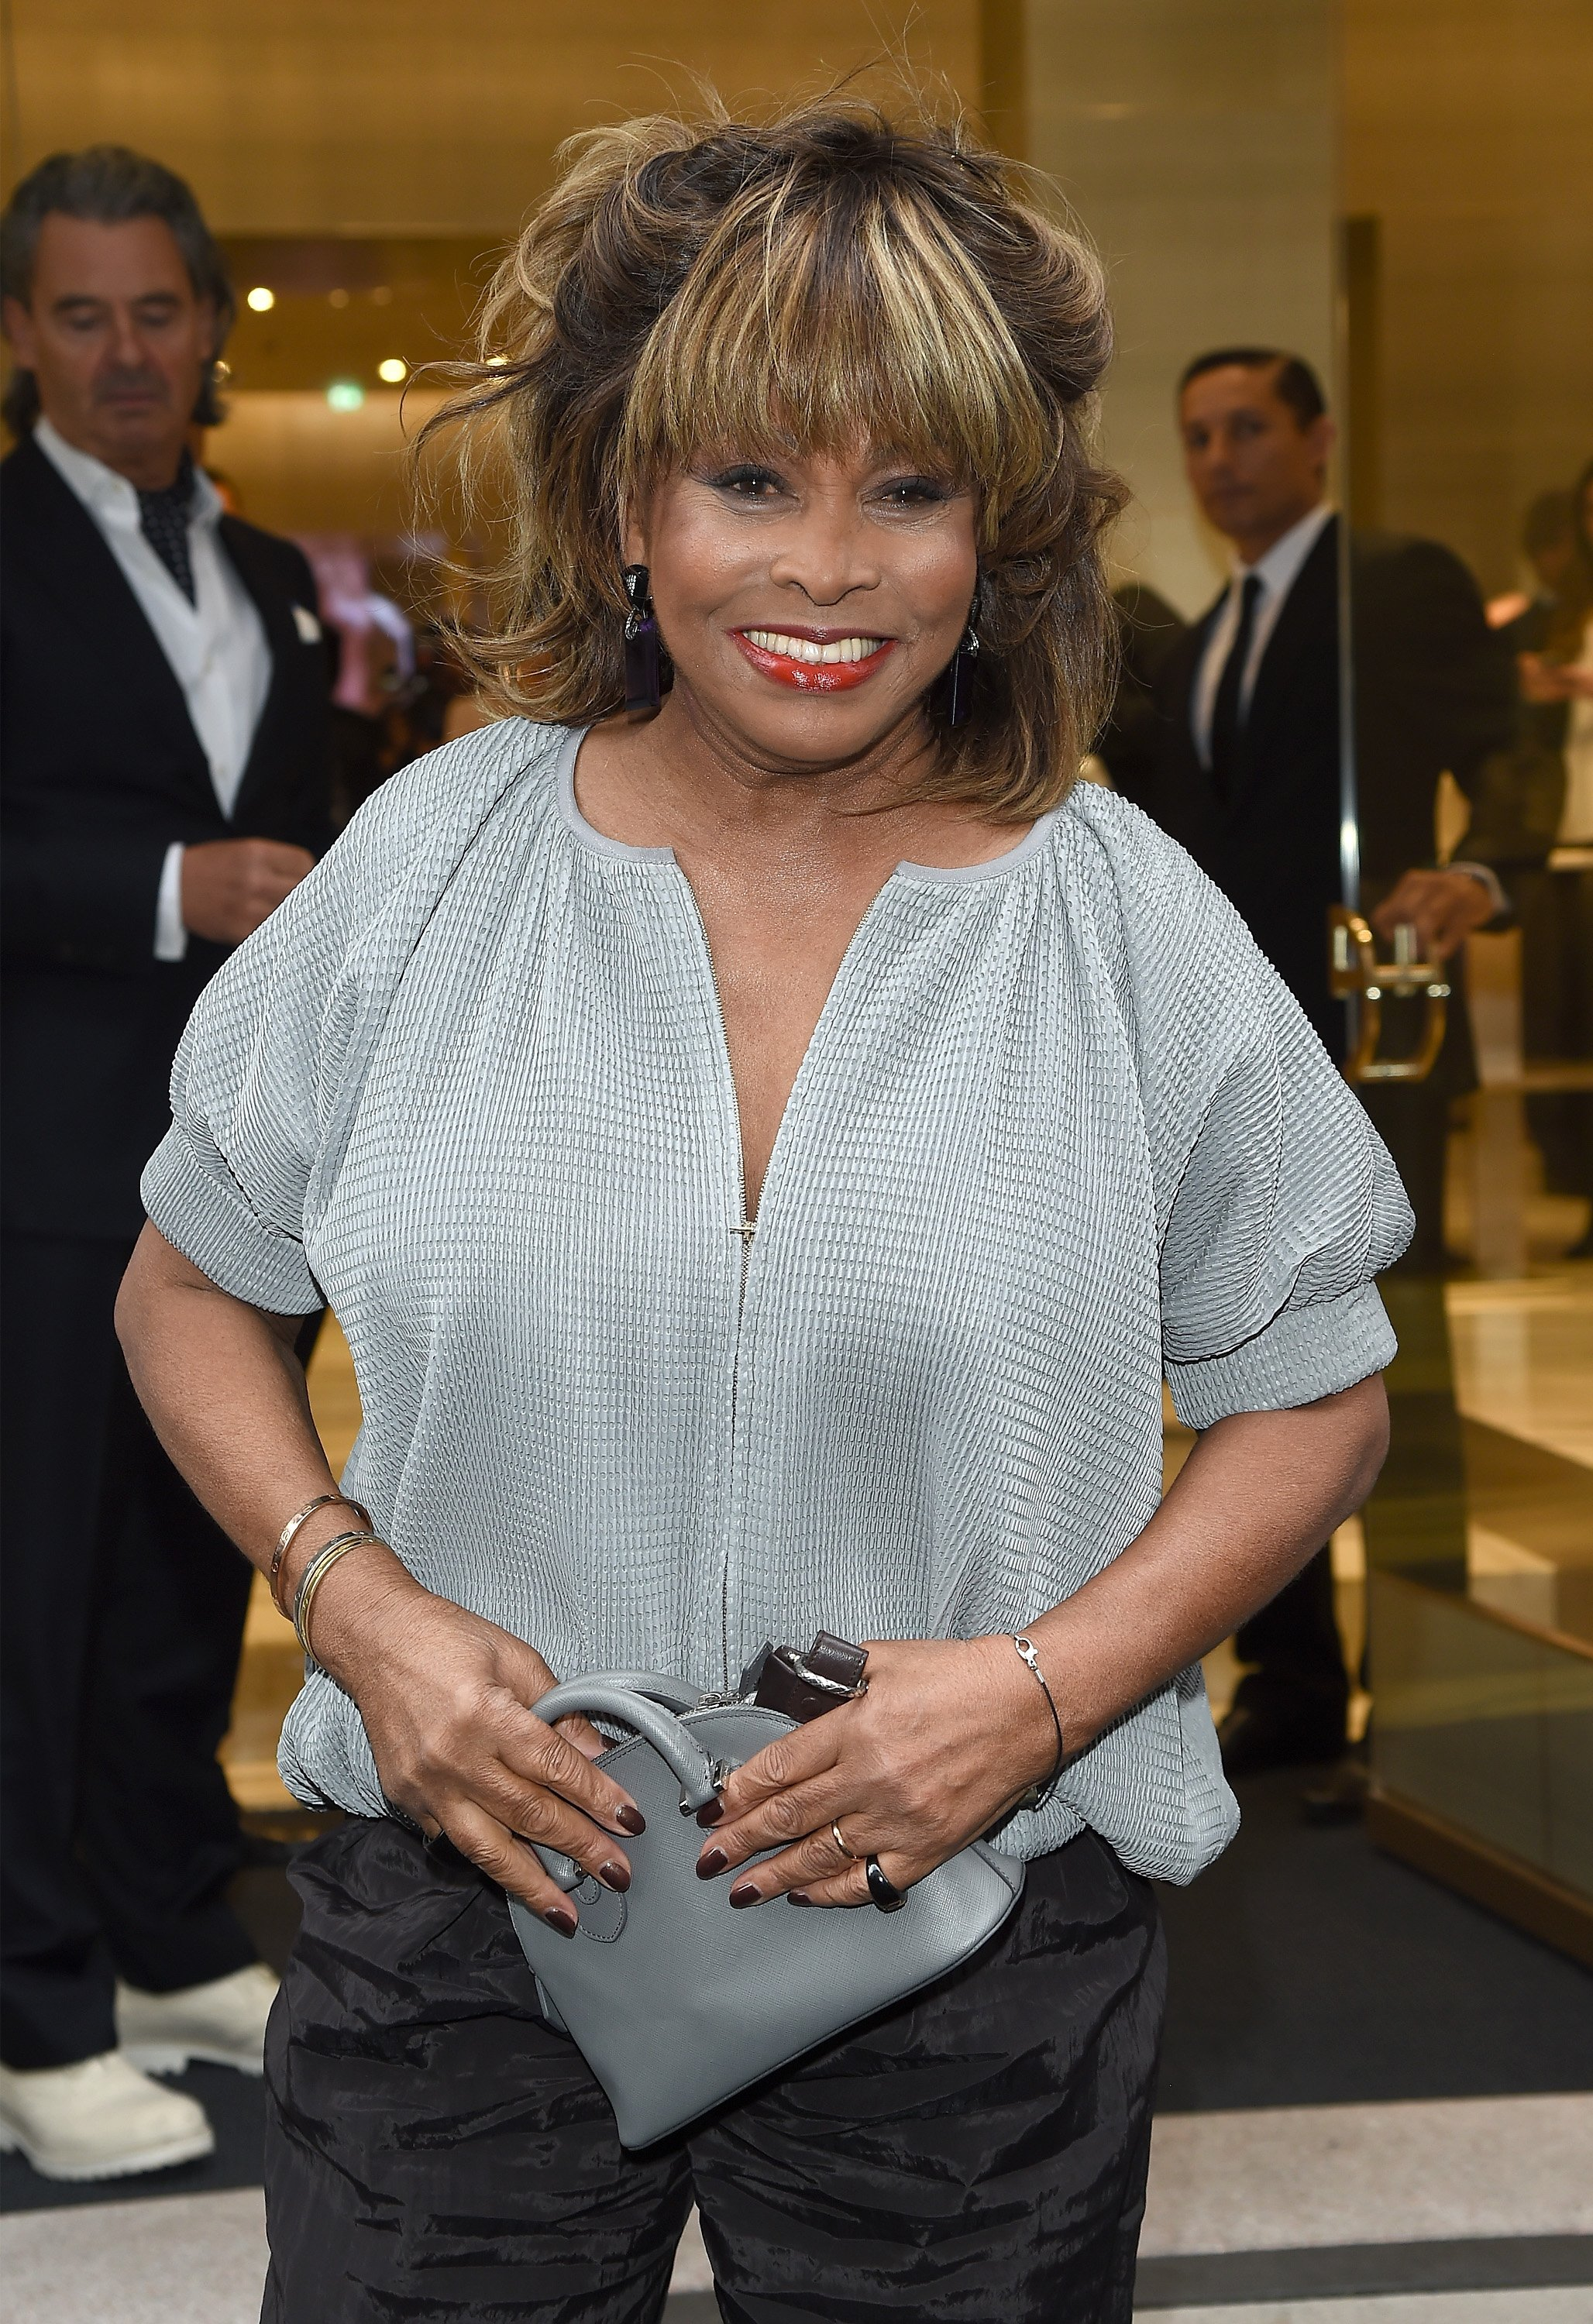 Tina Turner on April 29, 2015 in Milan, Italy | Photo: Getty Images